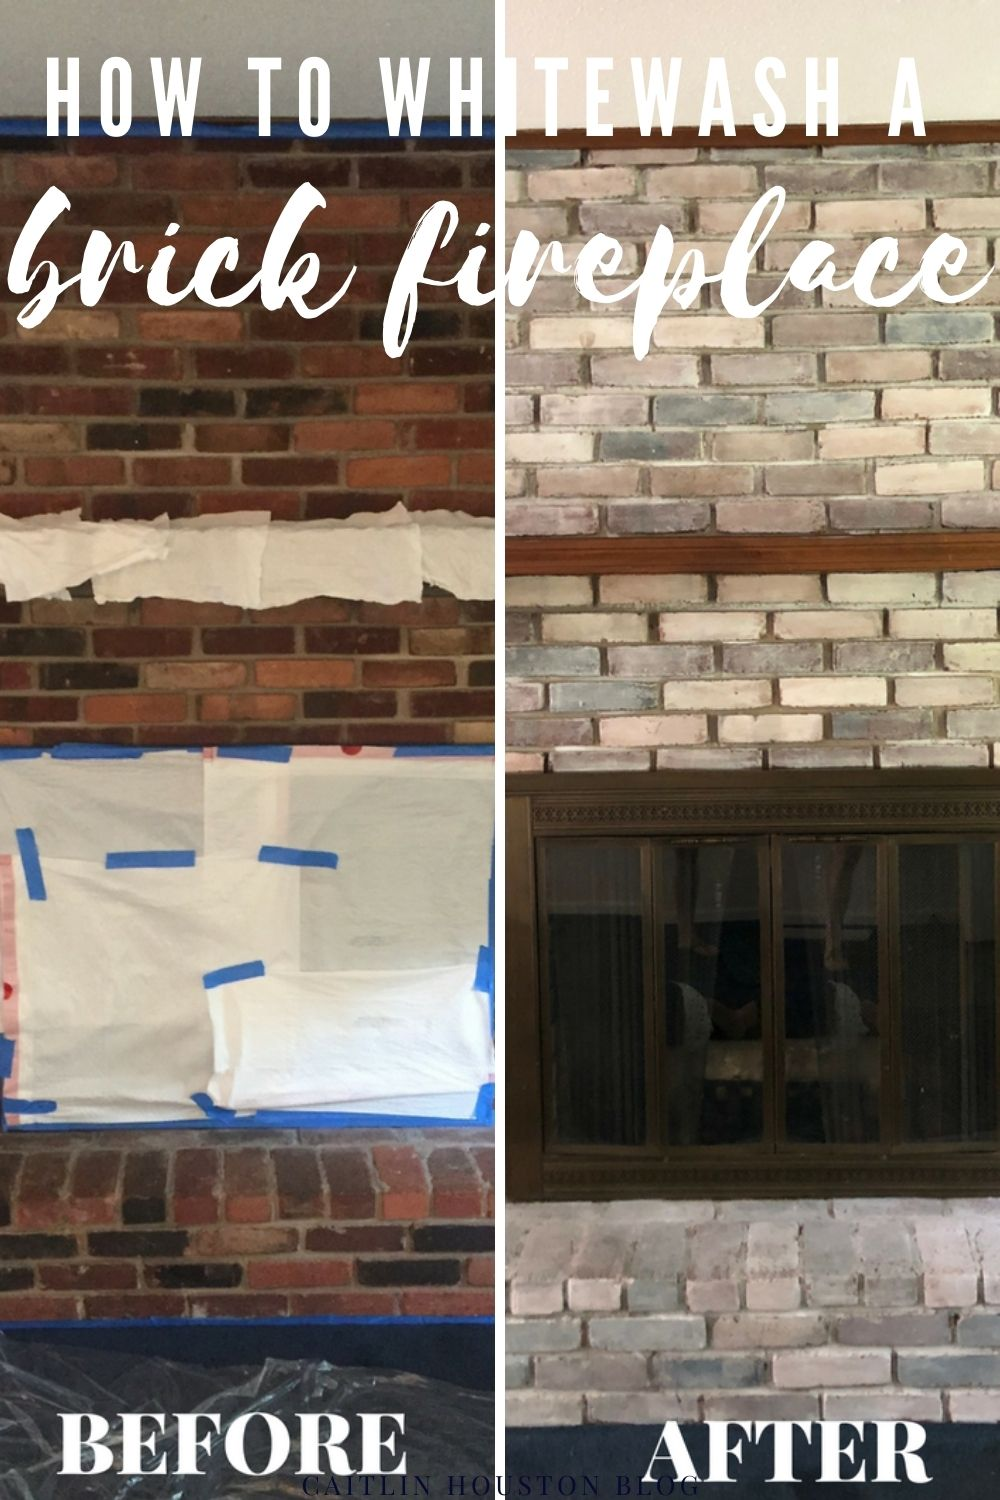 Here is how to whitewash a brick fireplace in seven easy steps, as well as a material list for this DIY Whitewash Fireplace project.